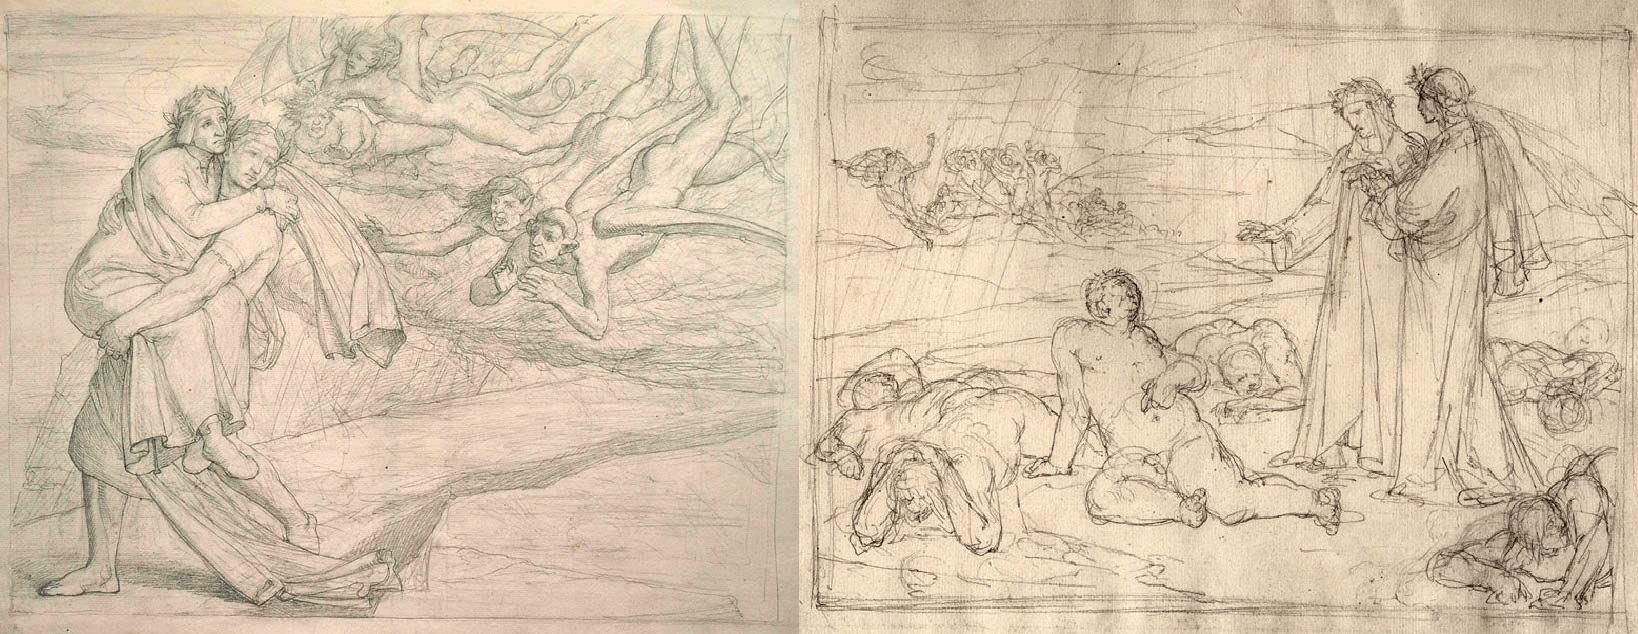 Friedrich Geselschap, compositions on Dante, ca. 1853, pen and ink on paper.